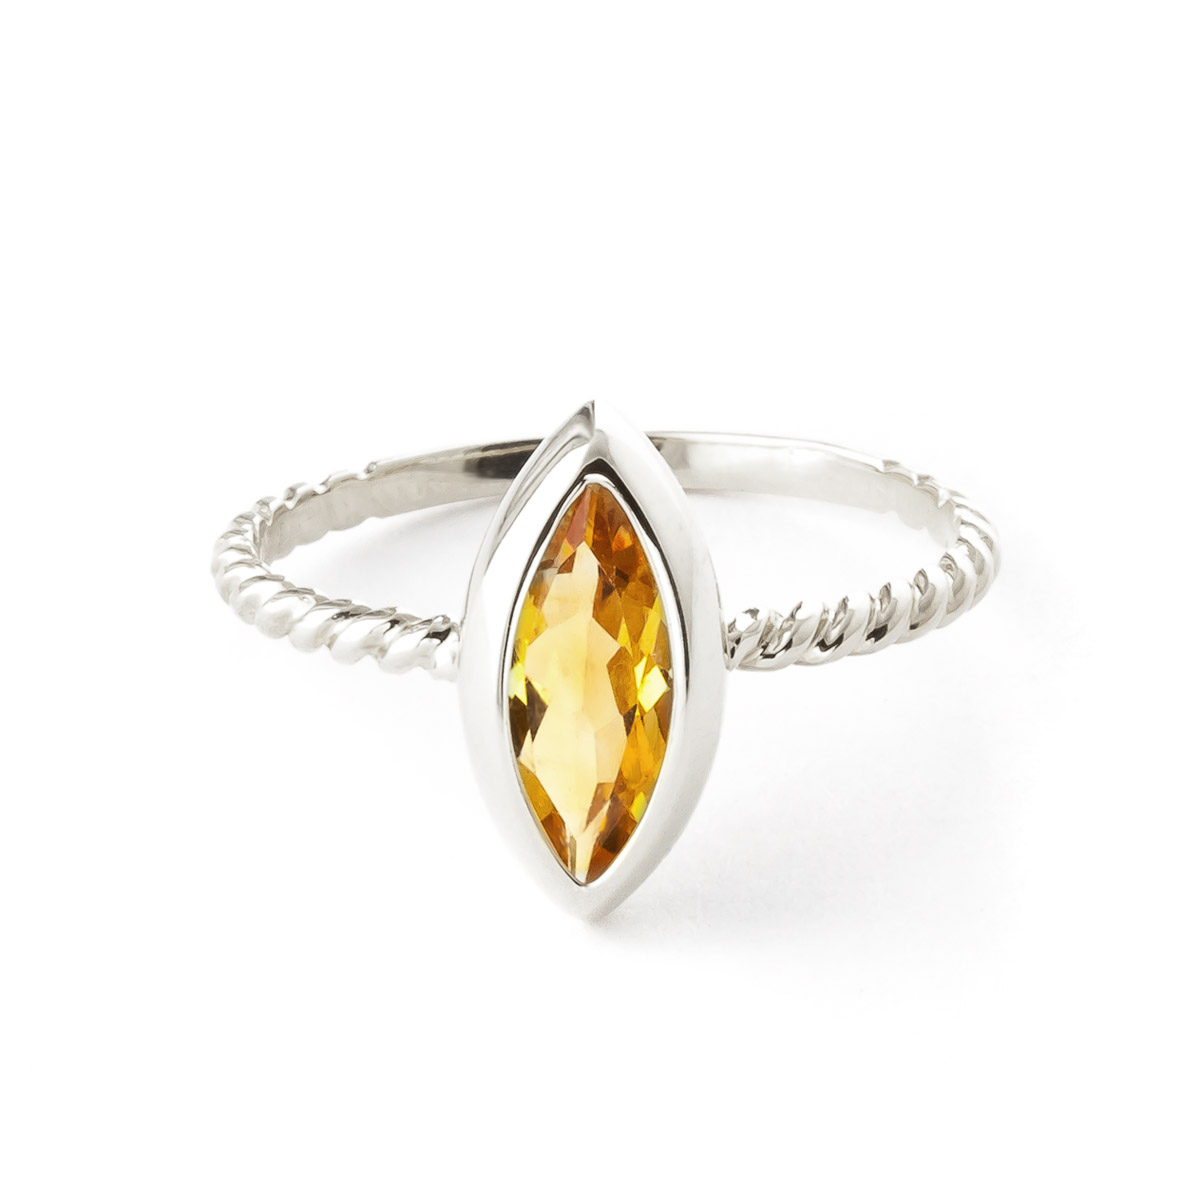 Marquise Cut Citrine Ring 1.7 ct in 18ct White Gold